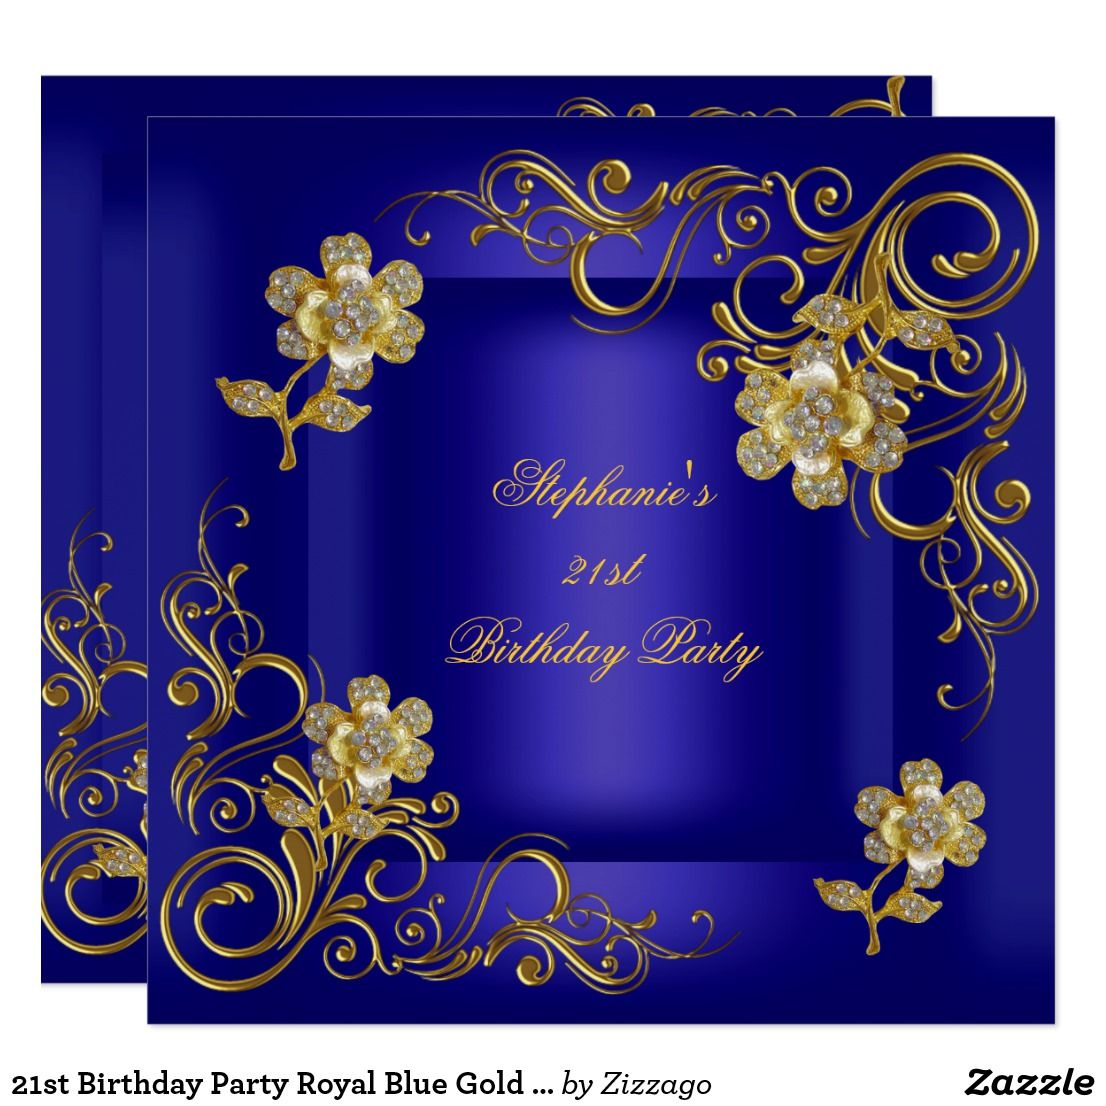 21st birthday party royal blue gold